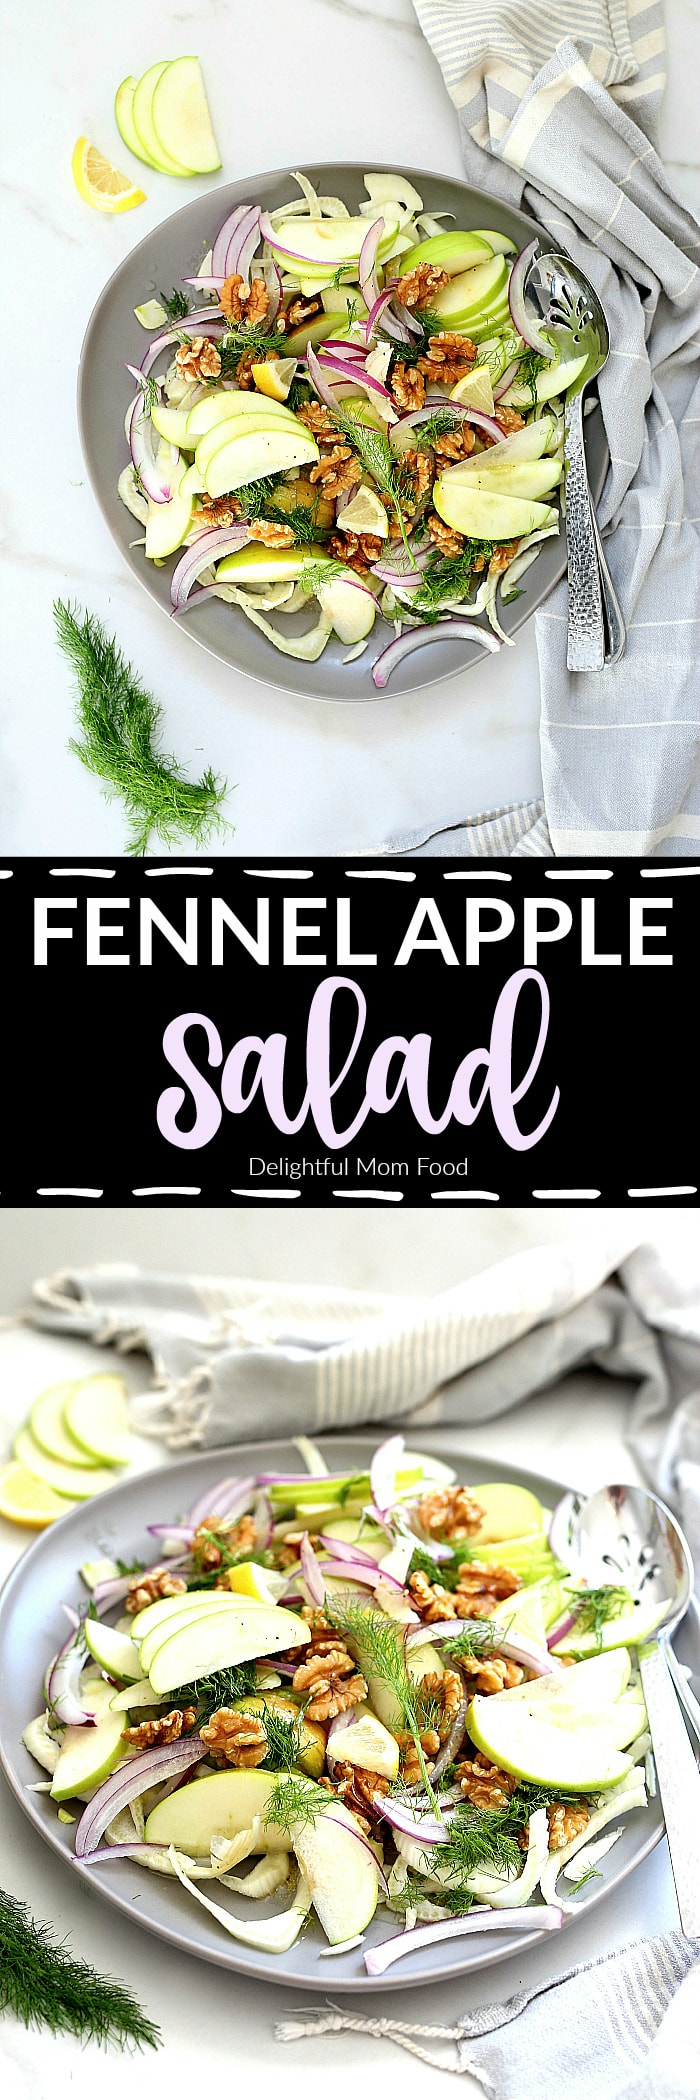 A light and simple fennel apple salad that everyone will love! This refreshing winter salad is drizzled with a light vinaigrette dressing that ramps up the flavors of fennel and apple – 10 minutes and a total crowd pleaser! #apple #fennel #salad #winter #glutenfree #healthy #easy #quick #winter #vegetarian #vegan #dairyfree #dressing | Recipe at delightfulmomfood.com